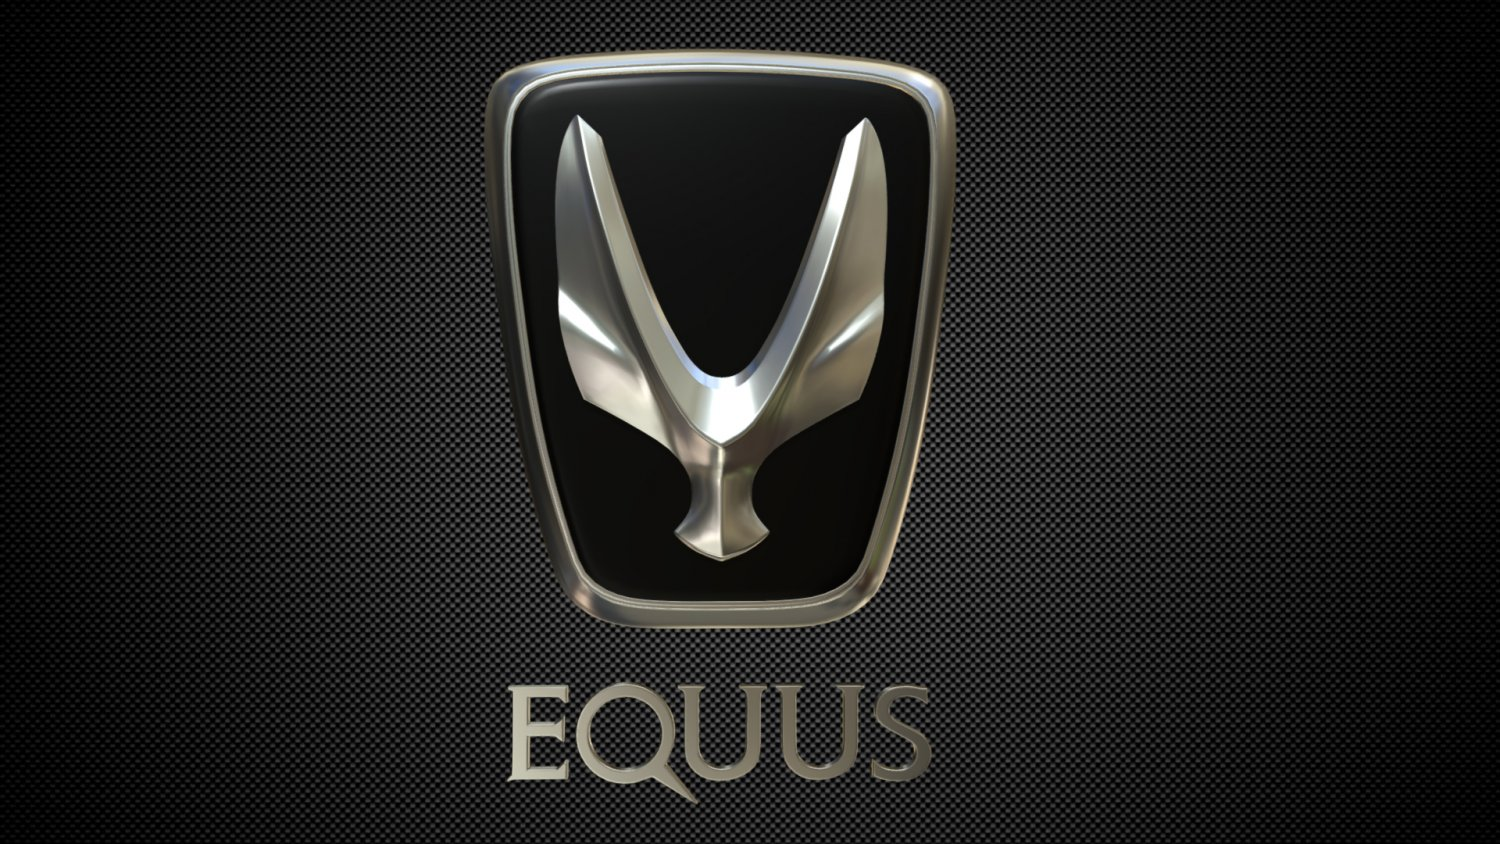 Equus logo 3D Model in Parts of auto 3DExport.